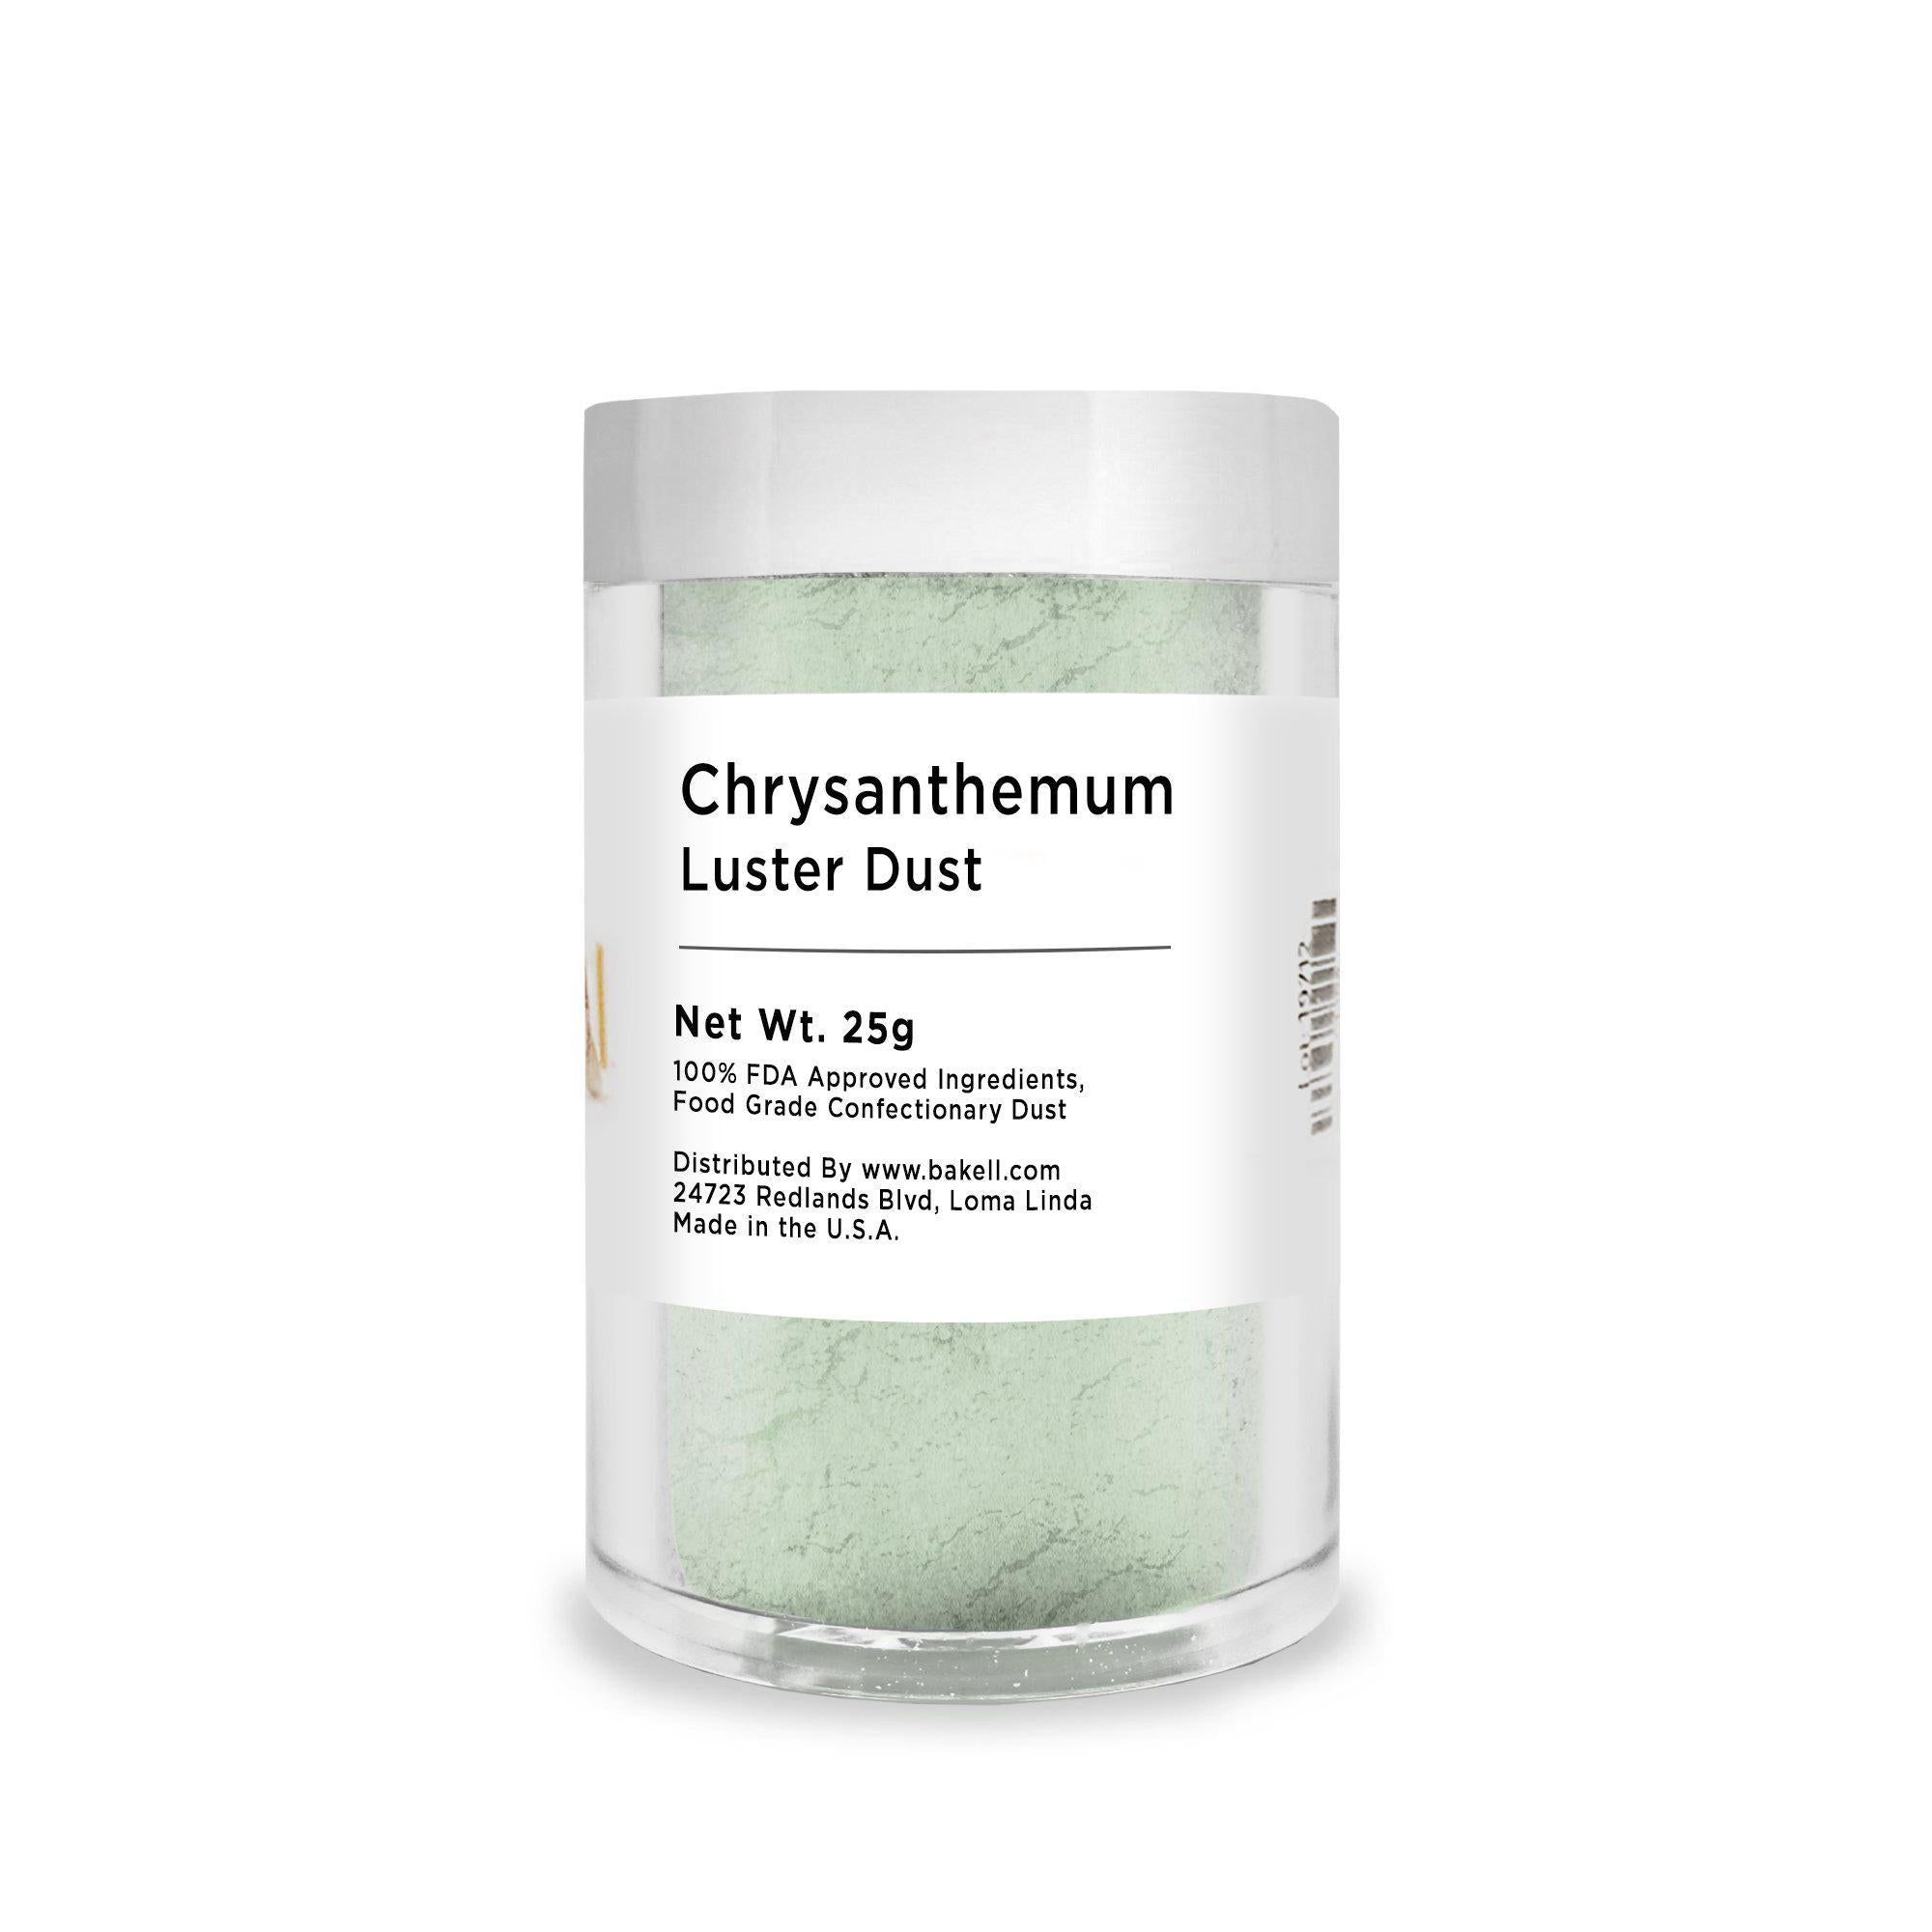 Chrysanthemum Green Edible Luster Dust | FDA Approved | Bakell® #1 site for FDA Compliant edible glitter & edible dust | Bakell.com